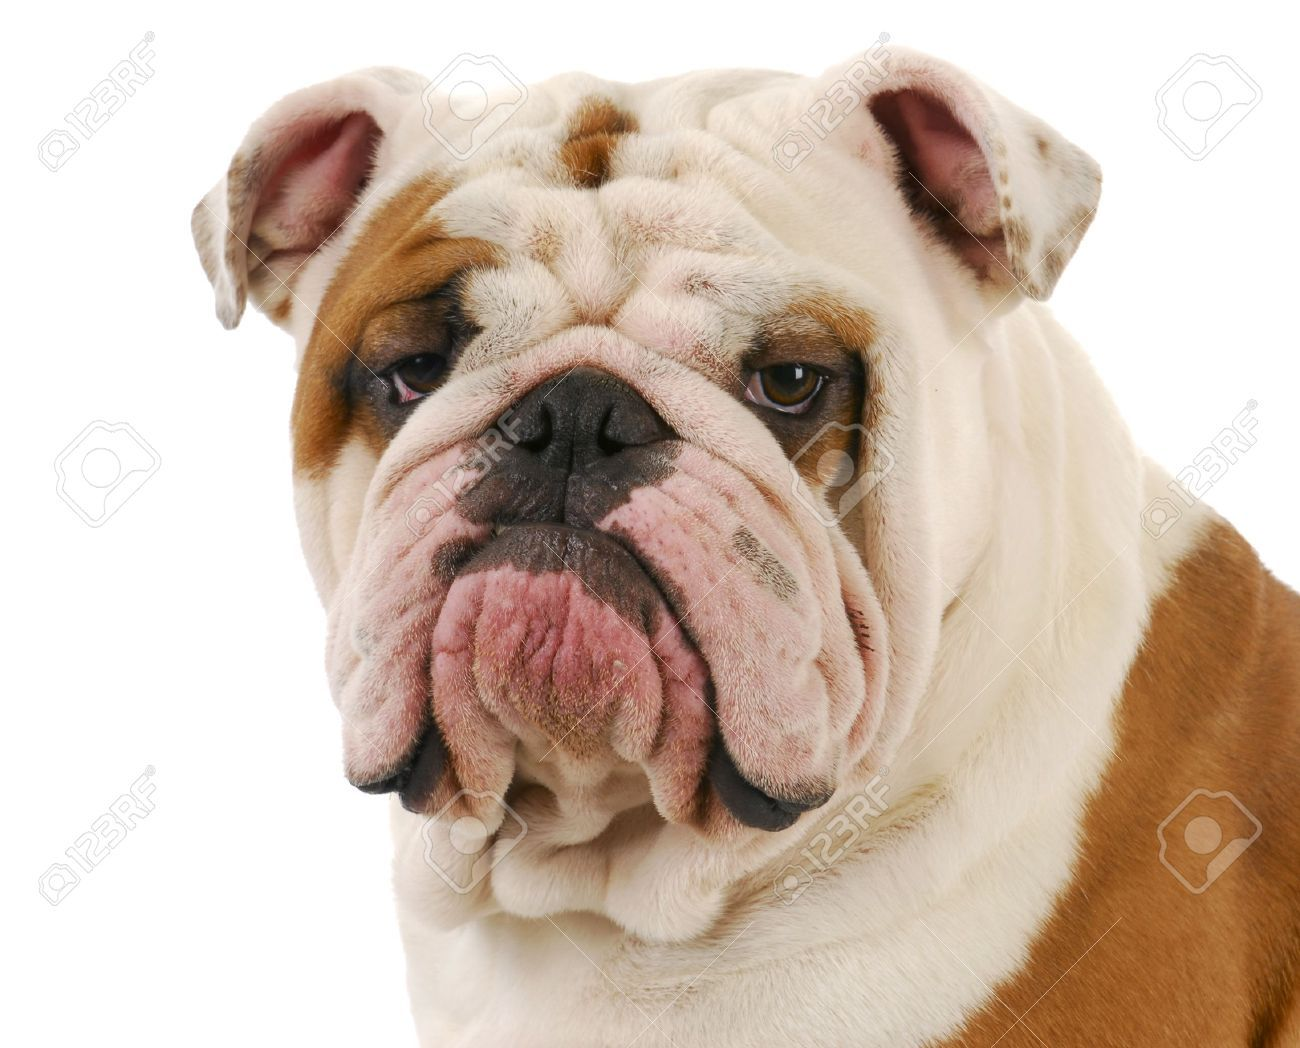 Bulldog Adult Stock Photos Images Royalty Free Bulldog Adult